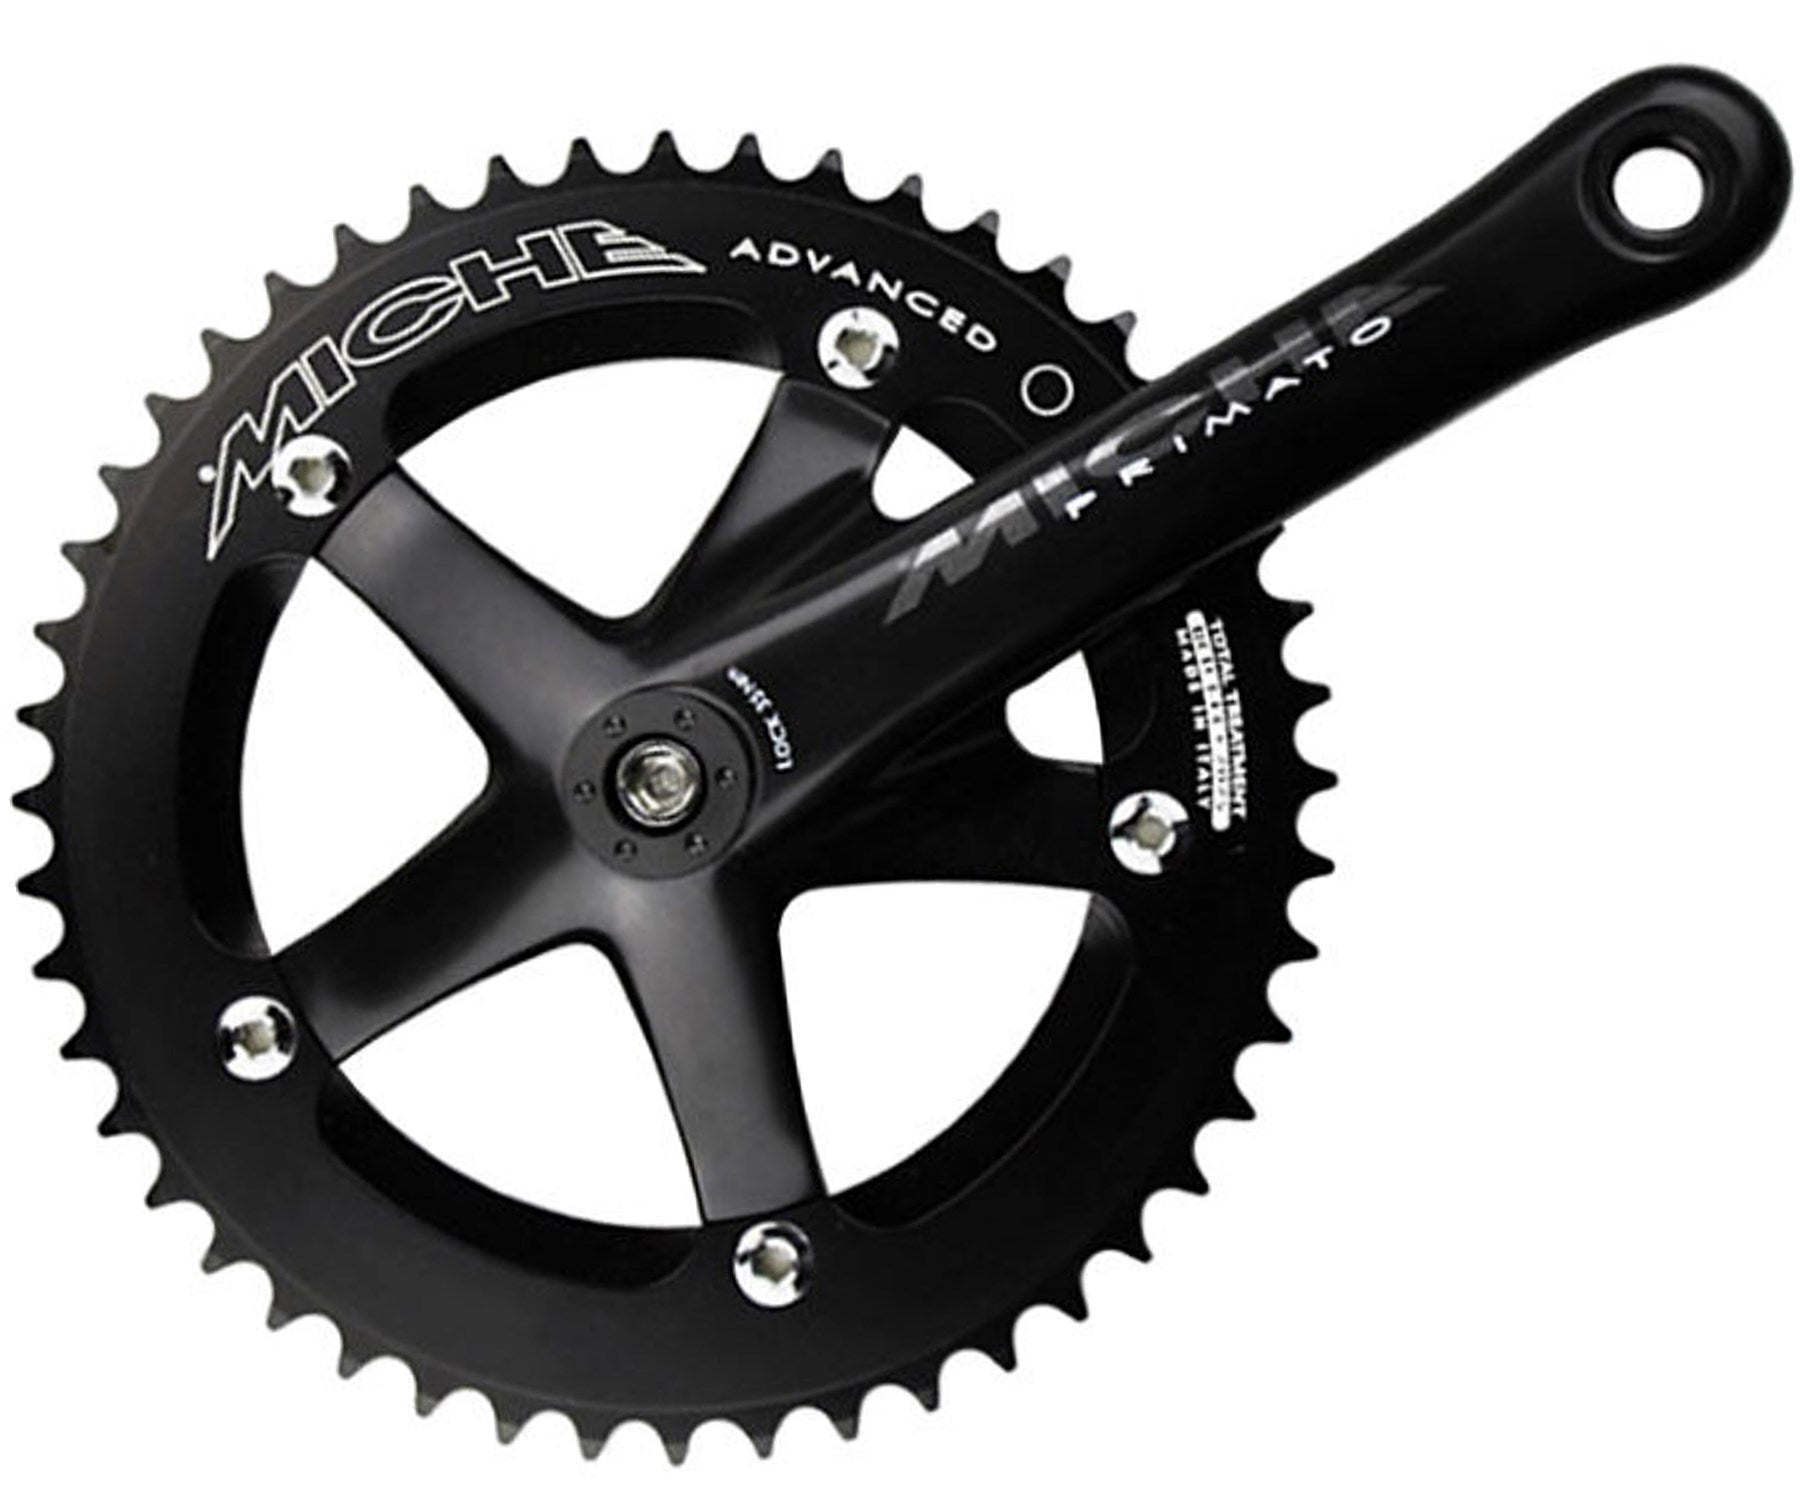 Miche Primato Advanced track JIS crankset - black - Retrogression